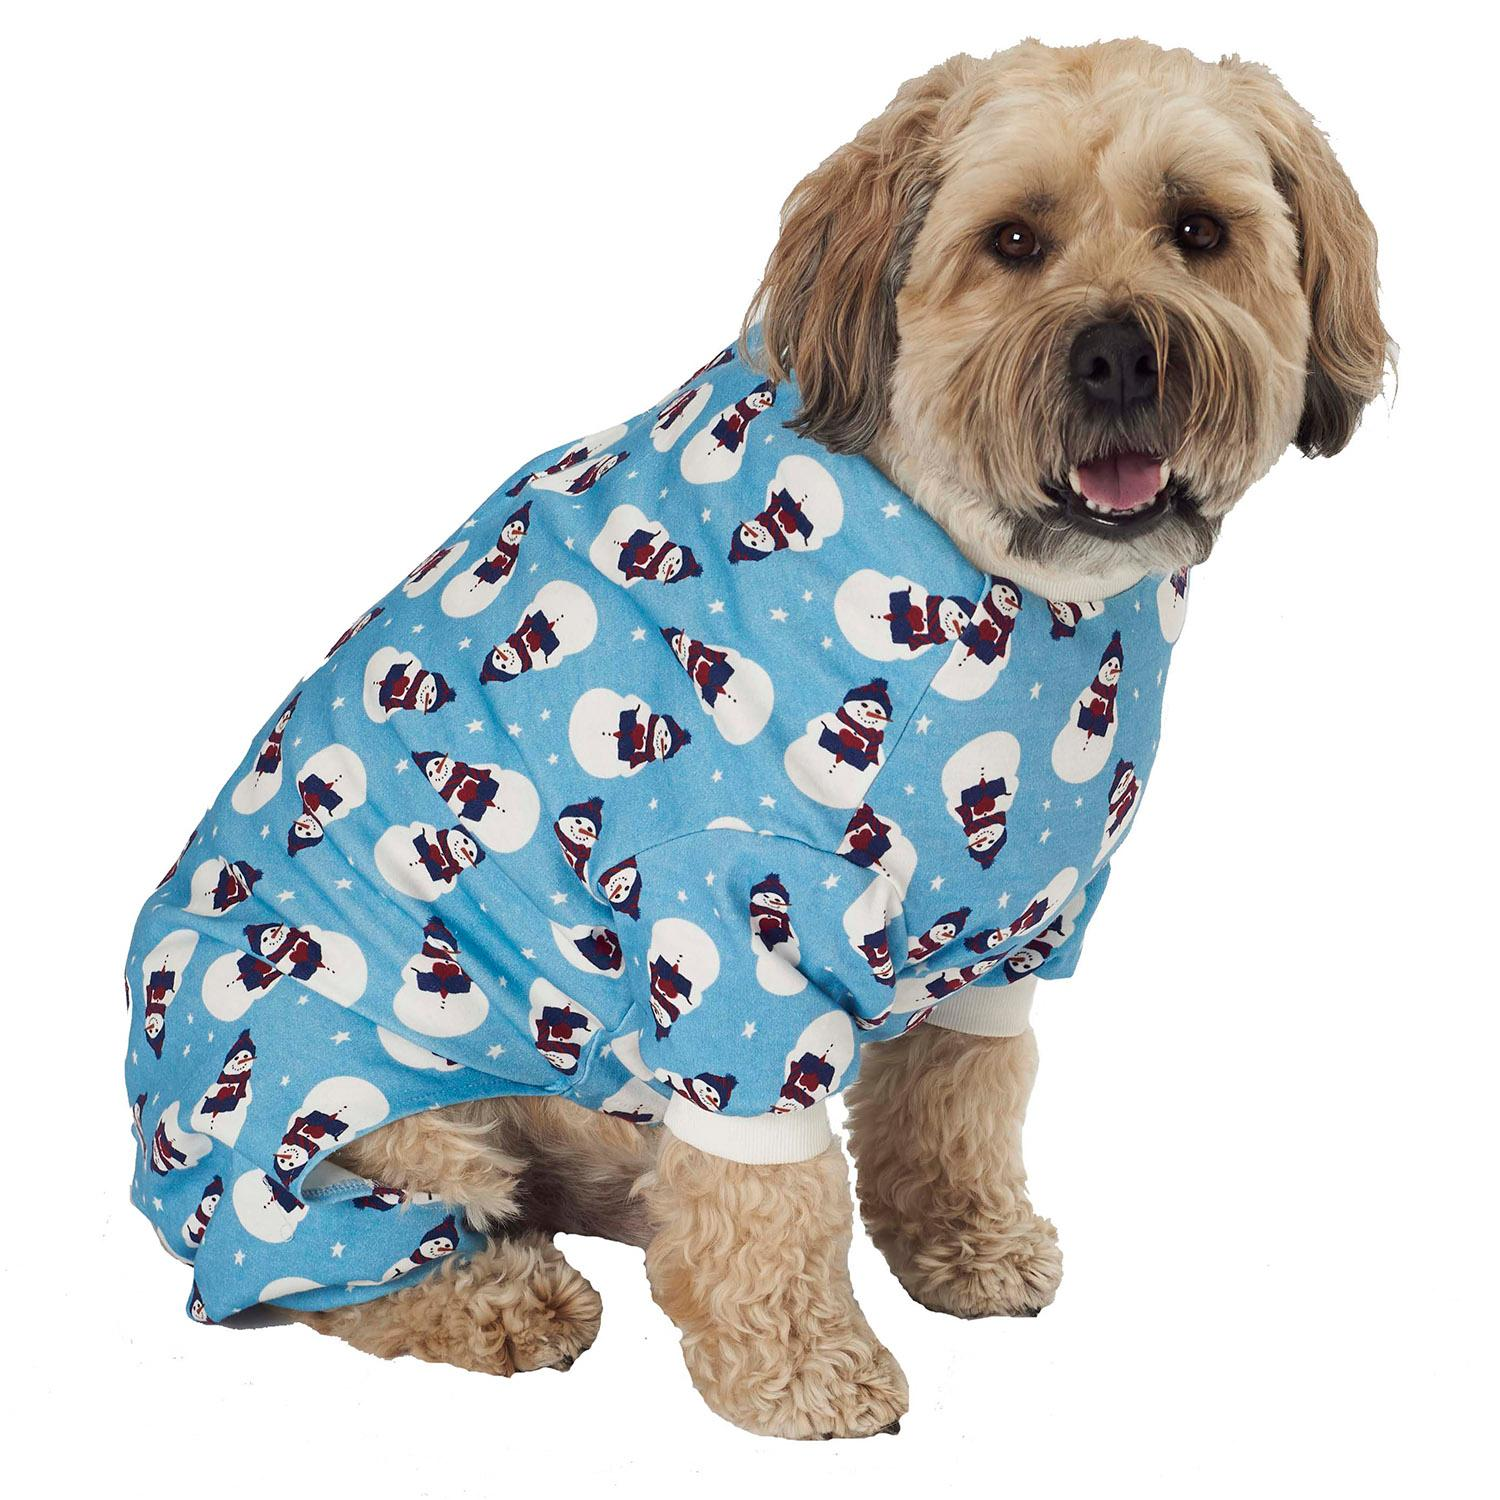 Snowman Dog Pajamas - Antique Blue